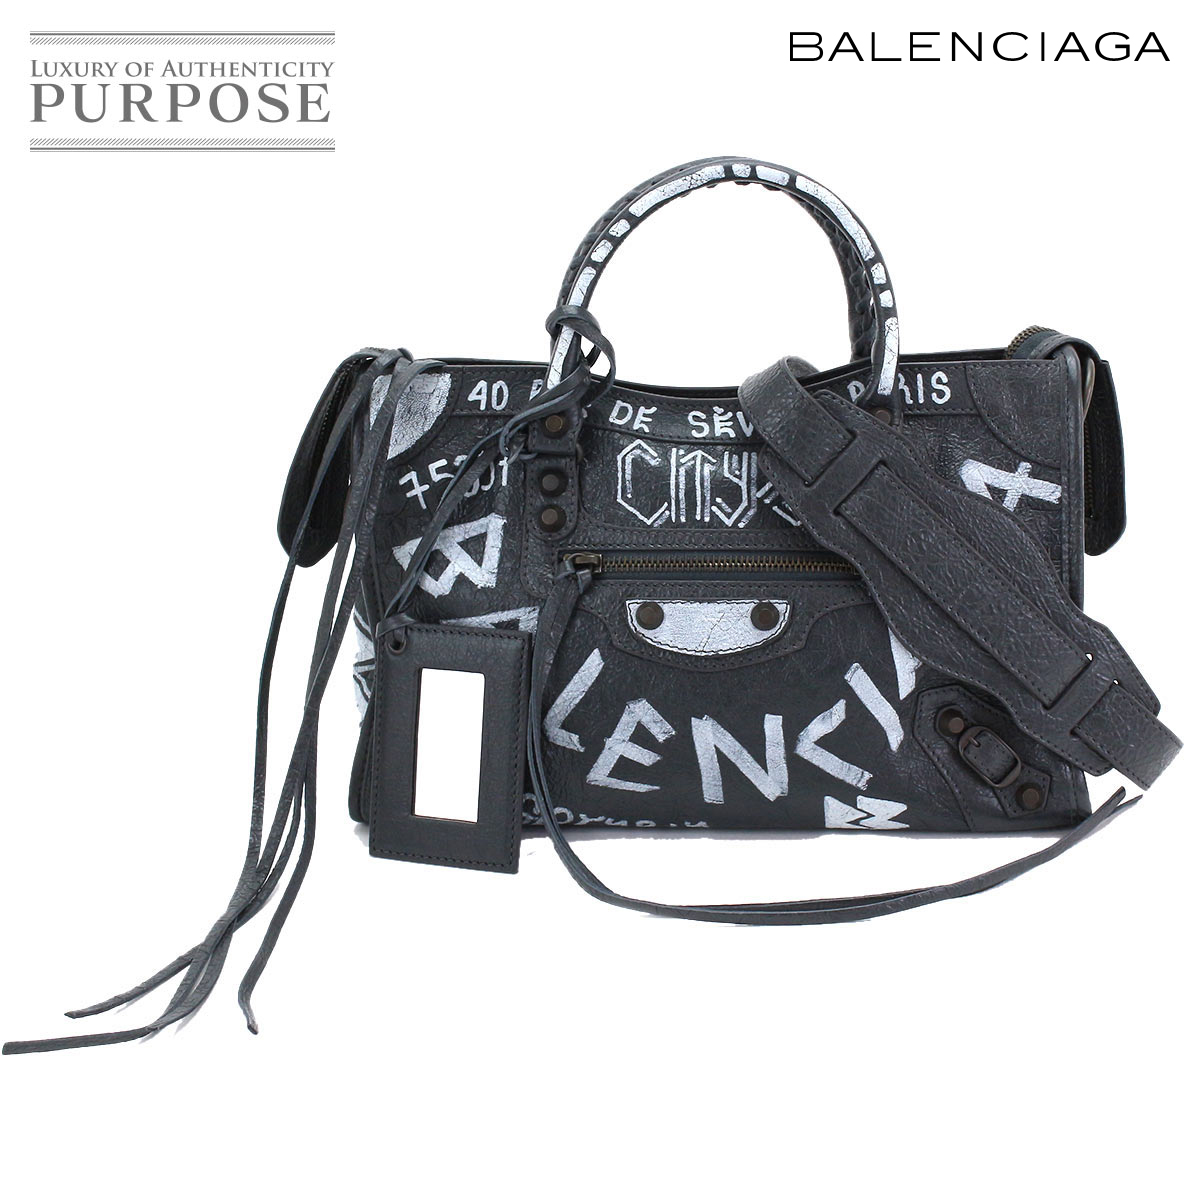 31be014163a [unused display] バレンシアガ BALENCIAGA graffiti classical music city S 2way  hand shoulder bag leather black white 431621 [used] brand